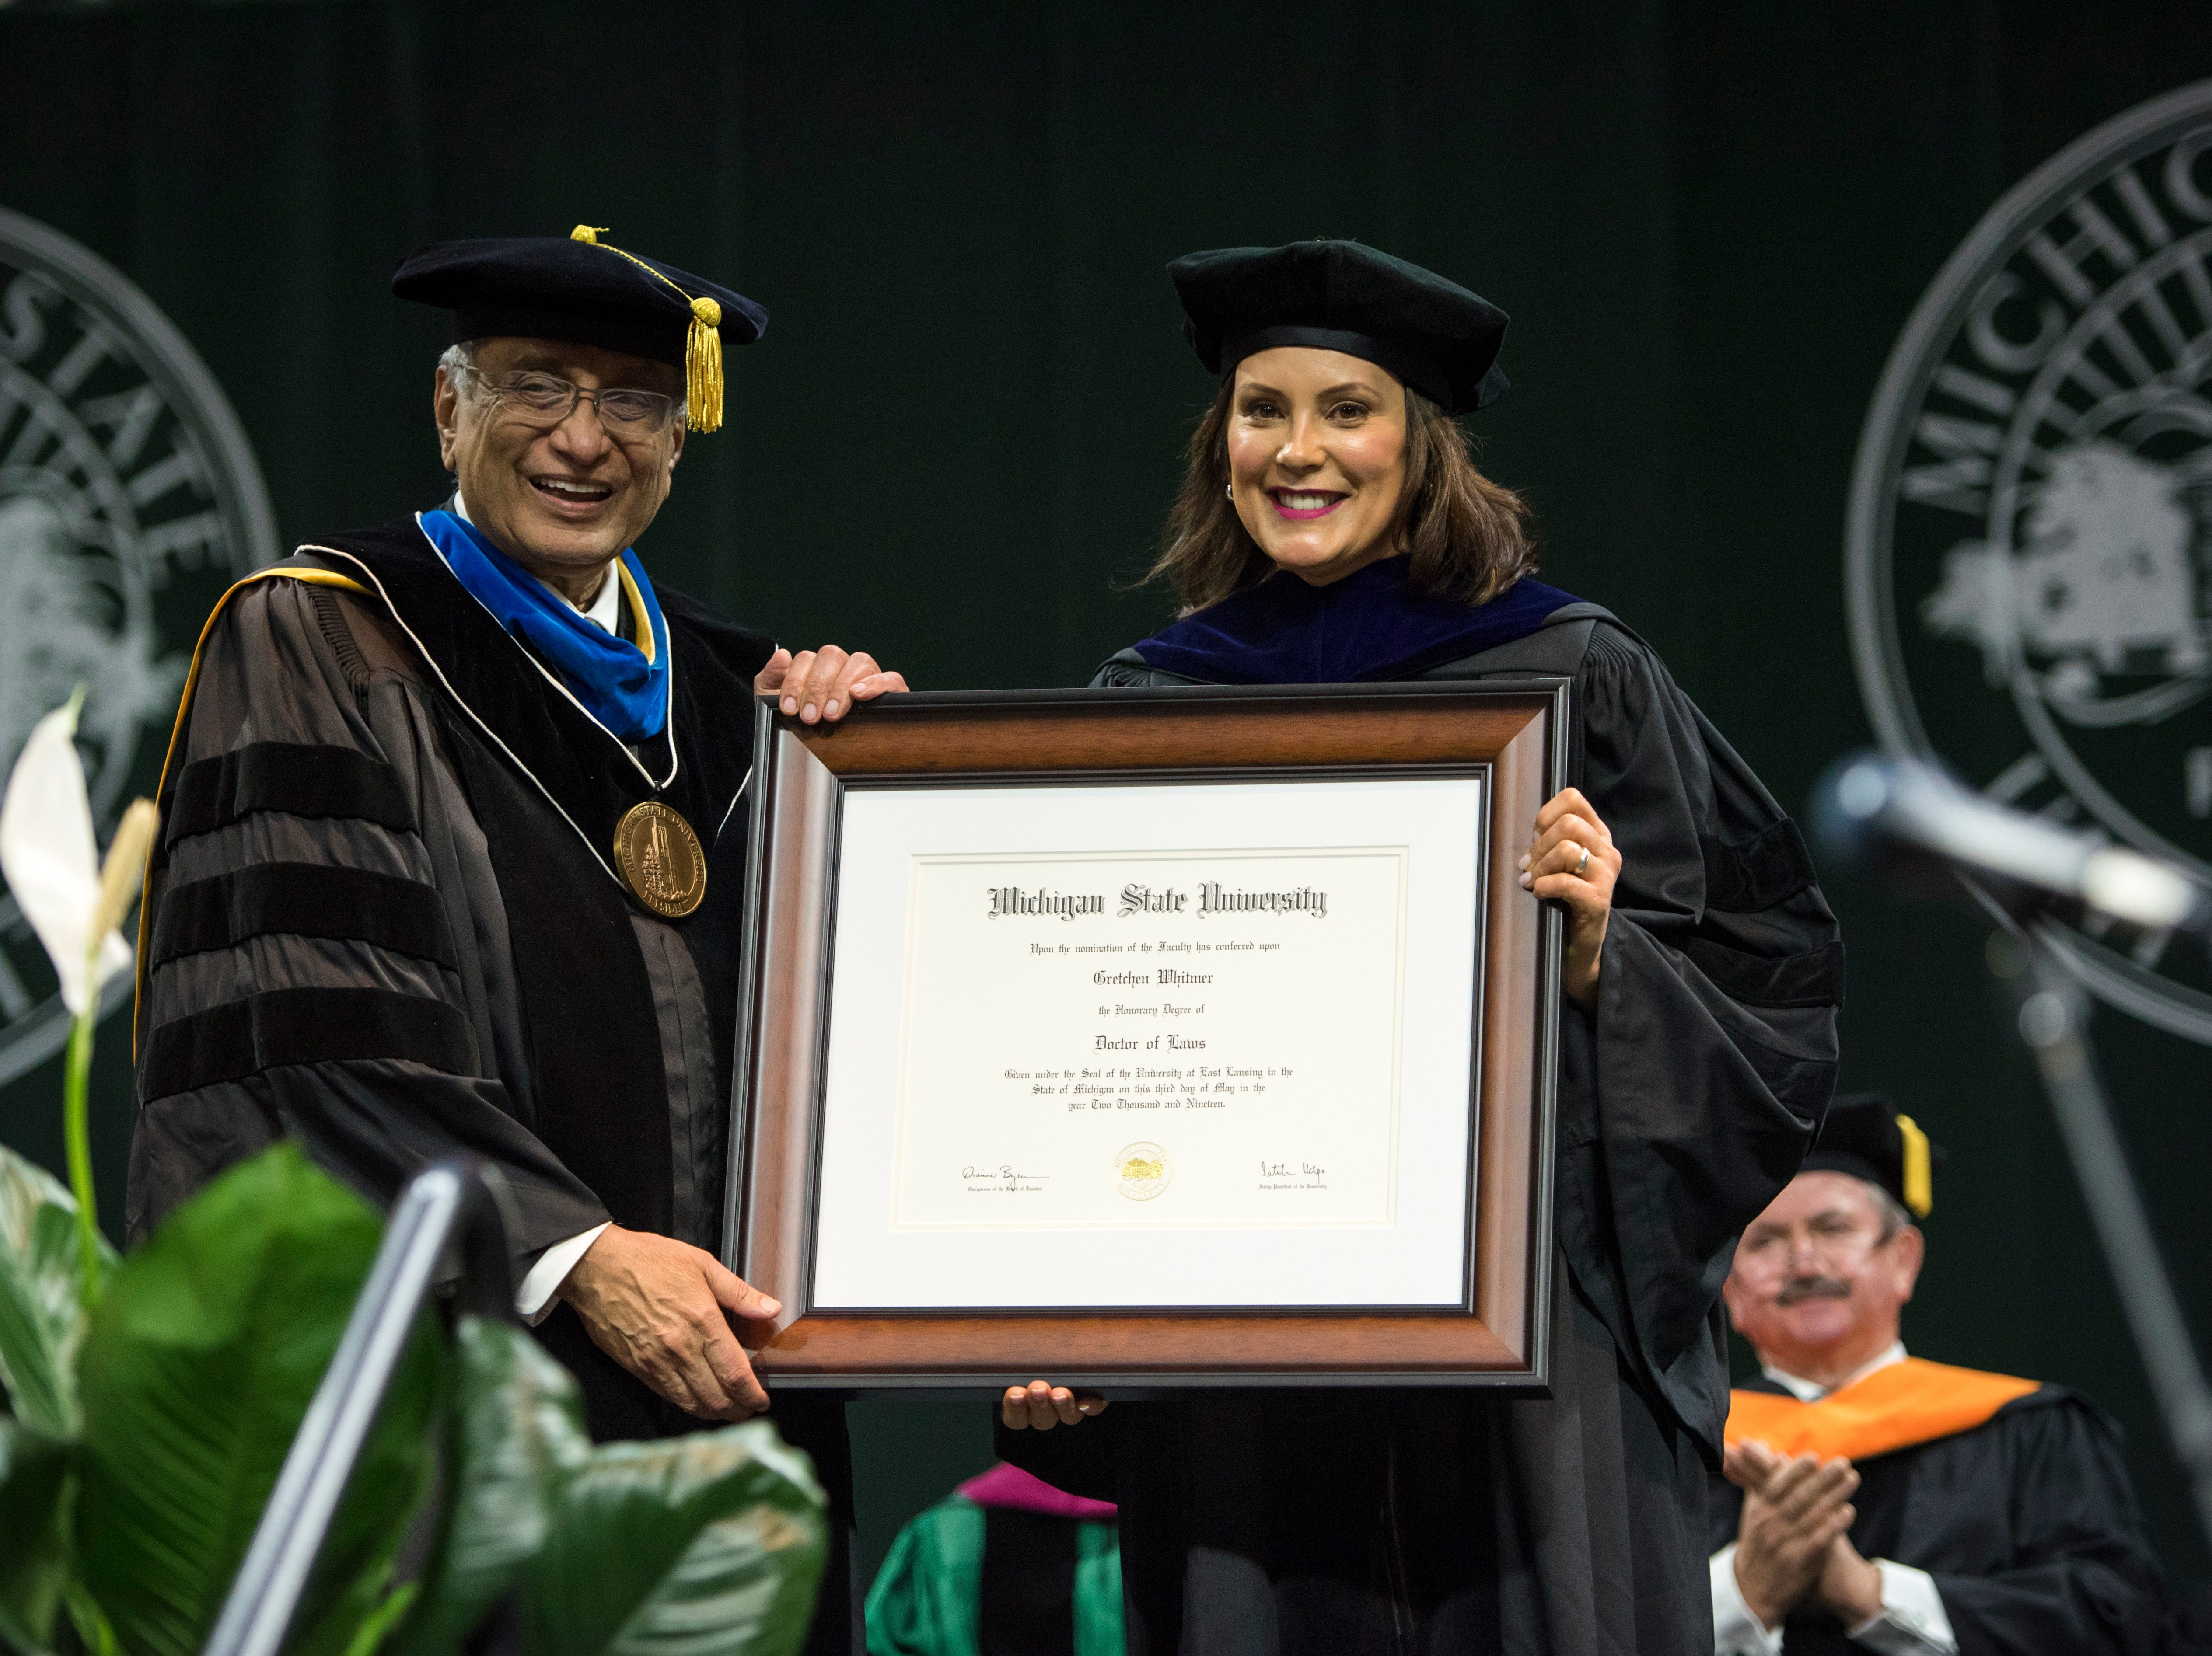 MSU Acting President Satish Udpa, left, and Michigan Gov. Gretchen Whitmer pose with Whitmer's honorary Doctor of Laws degree during the MSU Advanced Degrees Commencement ceremony at Breslin Center in East Lansing on Friday, May 3, 2019.